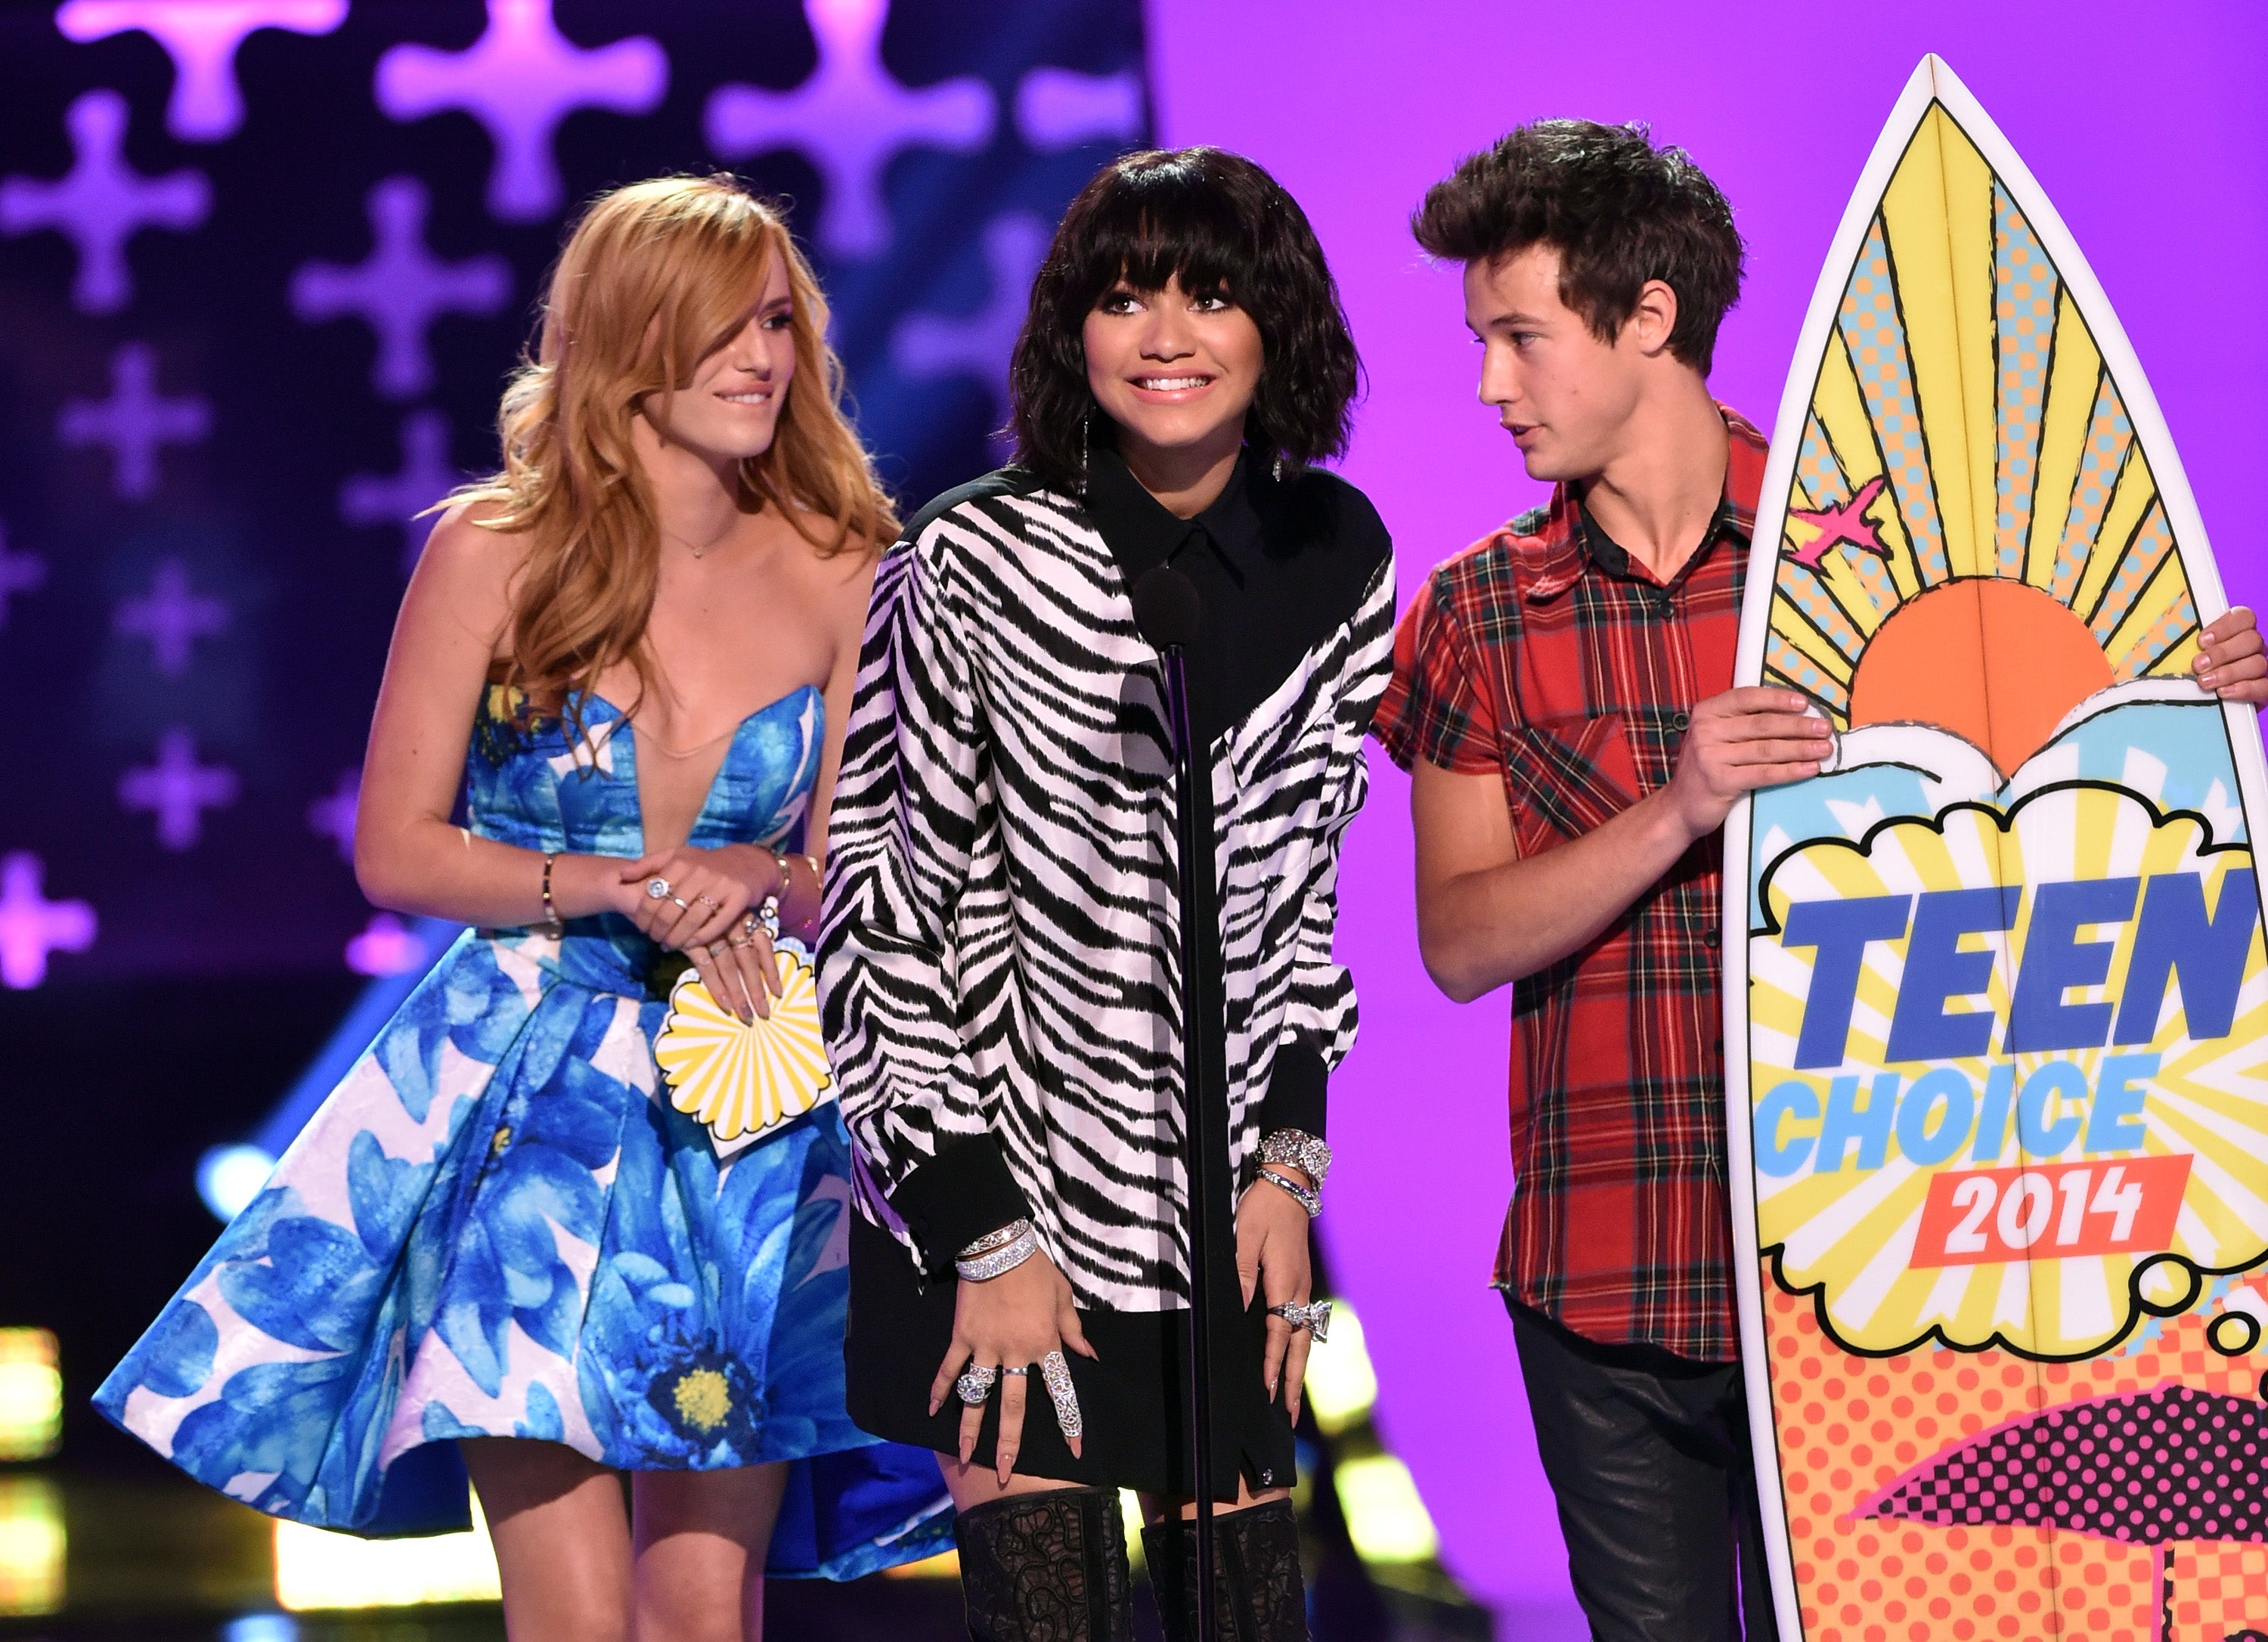 Teen Choice Awards 2014: Awards ceremony is 'rigged', web stars and